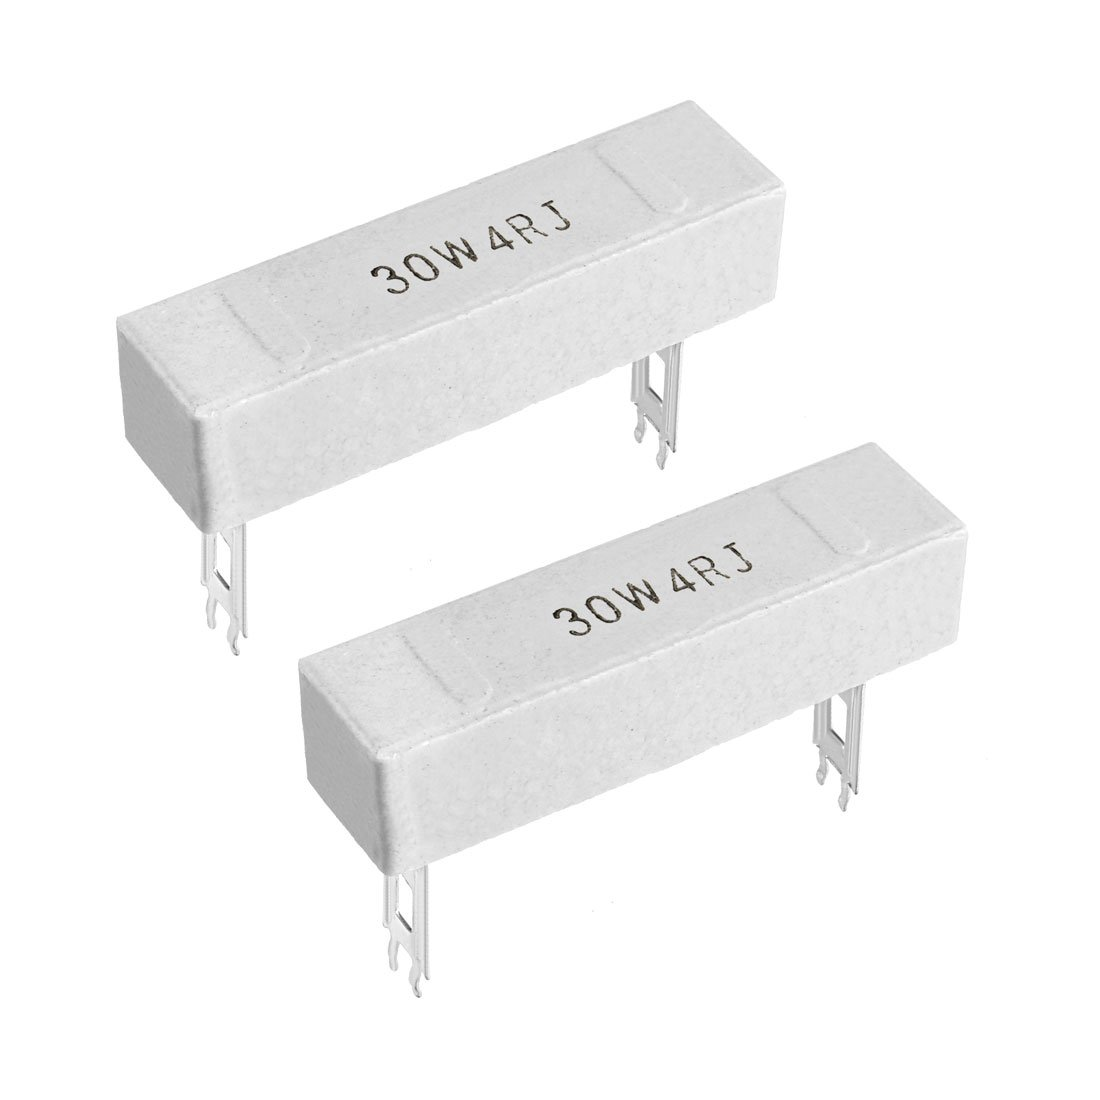 uxcell 30W 20 Ohm Power Resistor Ceramic Cement Resistor Axial Lead White 2pcs